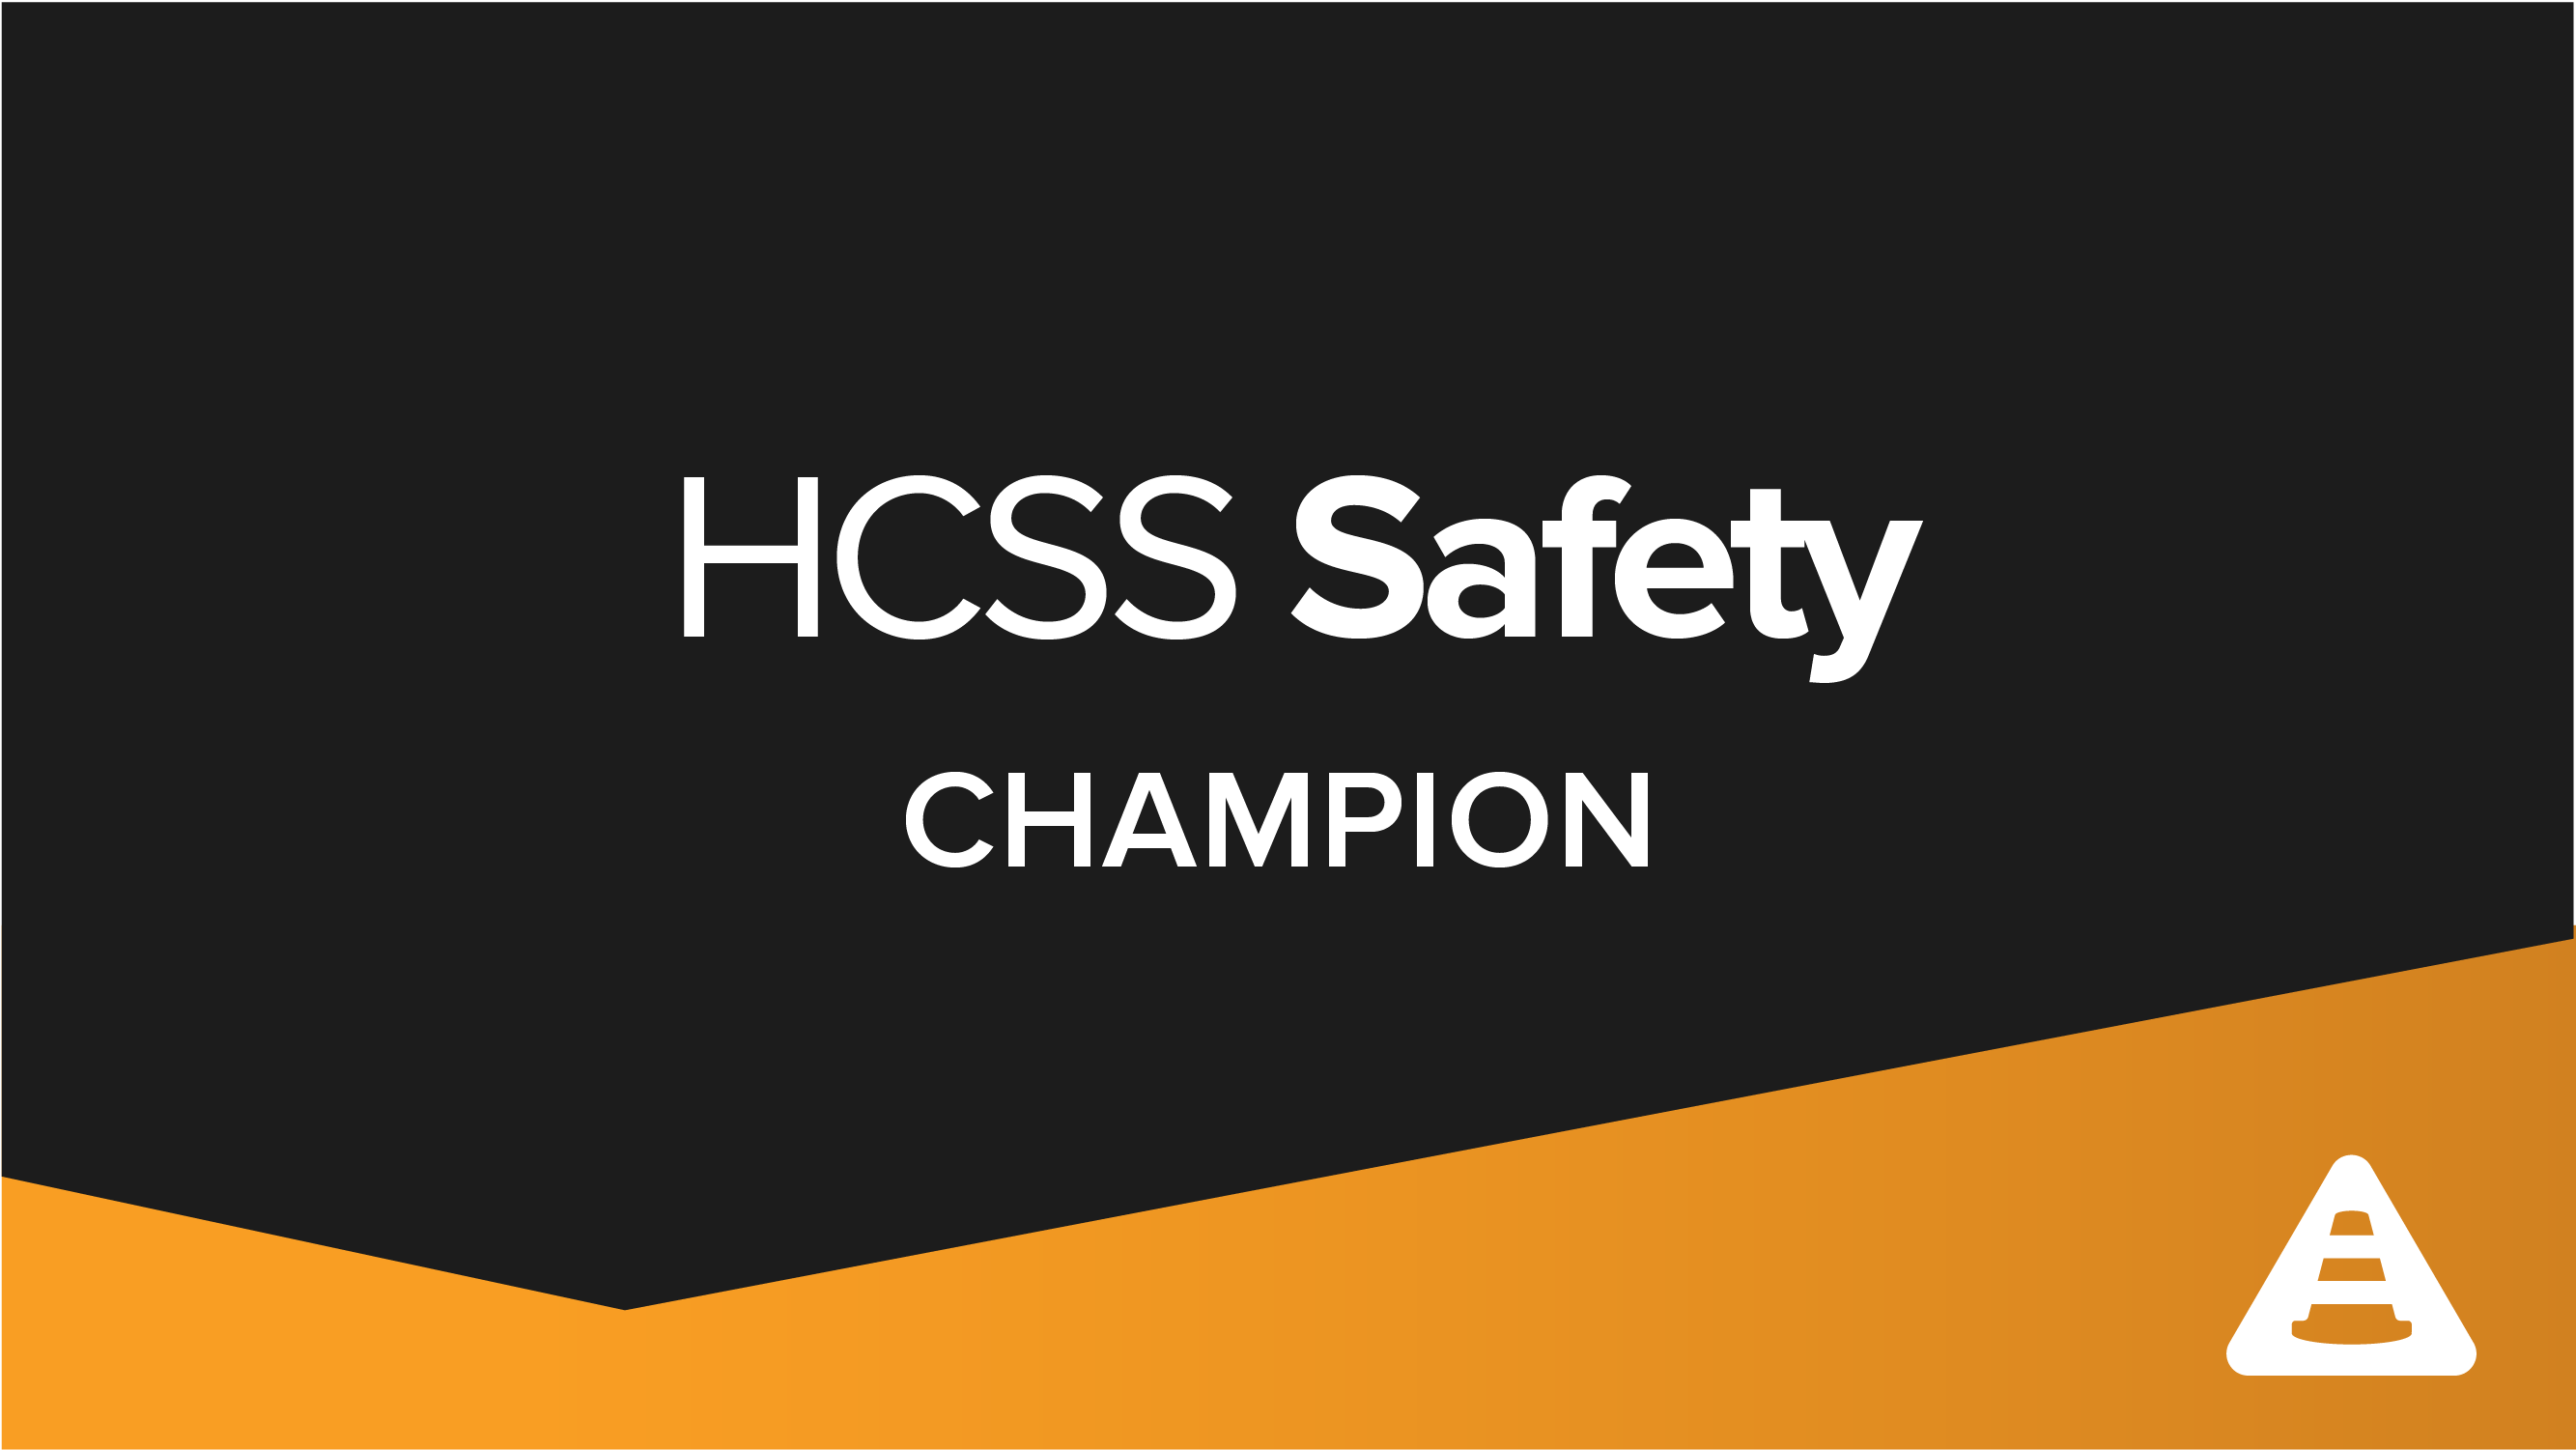 Safety 101: Capturing Safety Inspections Electronically